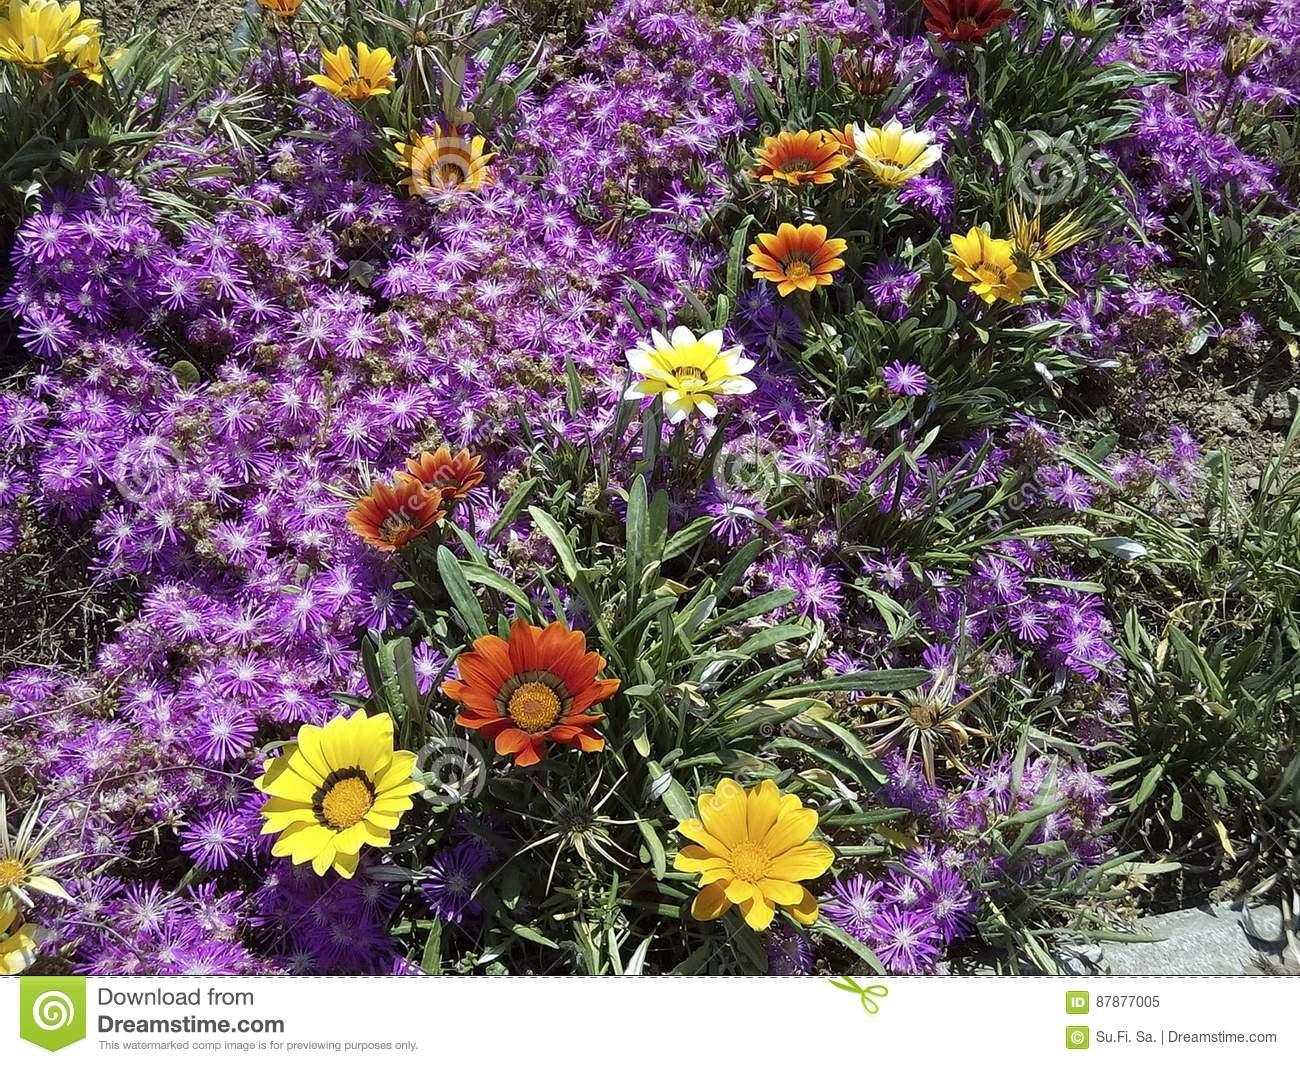 Beautiful natural flowers colorful yellow red purple stock image beautiful natural flowers colorful yellow red purple izmirmasajfo